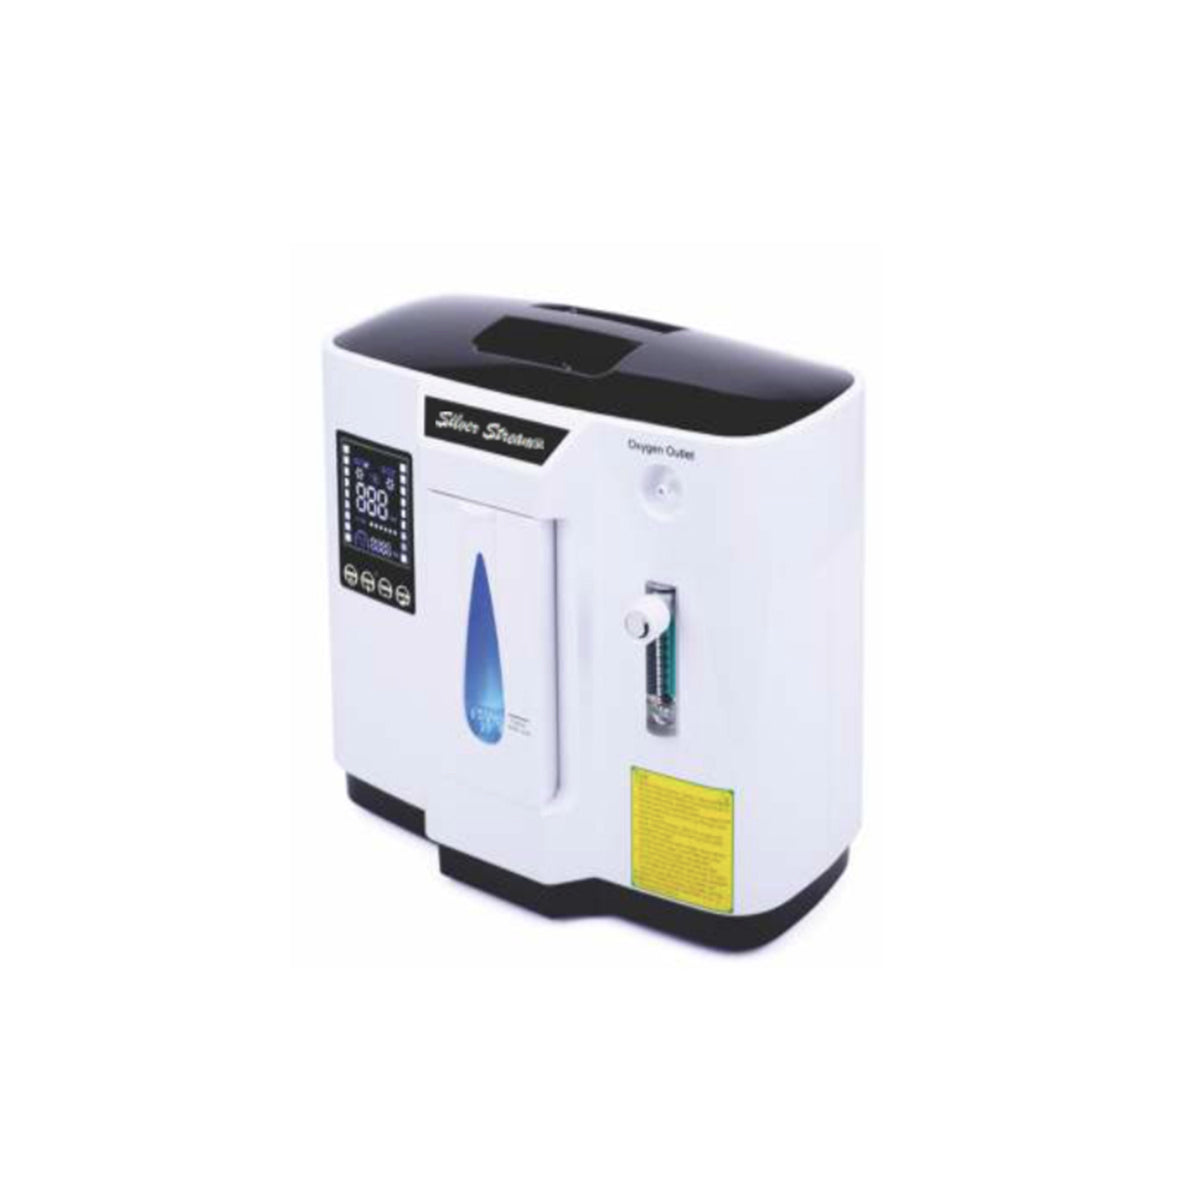 The Silver Stream® Portable Oxygen Concentrator helps enable patients to live with greater independence while providing caregivers with the peace of mind that comes with a reliable and trusted ventilation system with a long battery life.